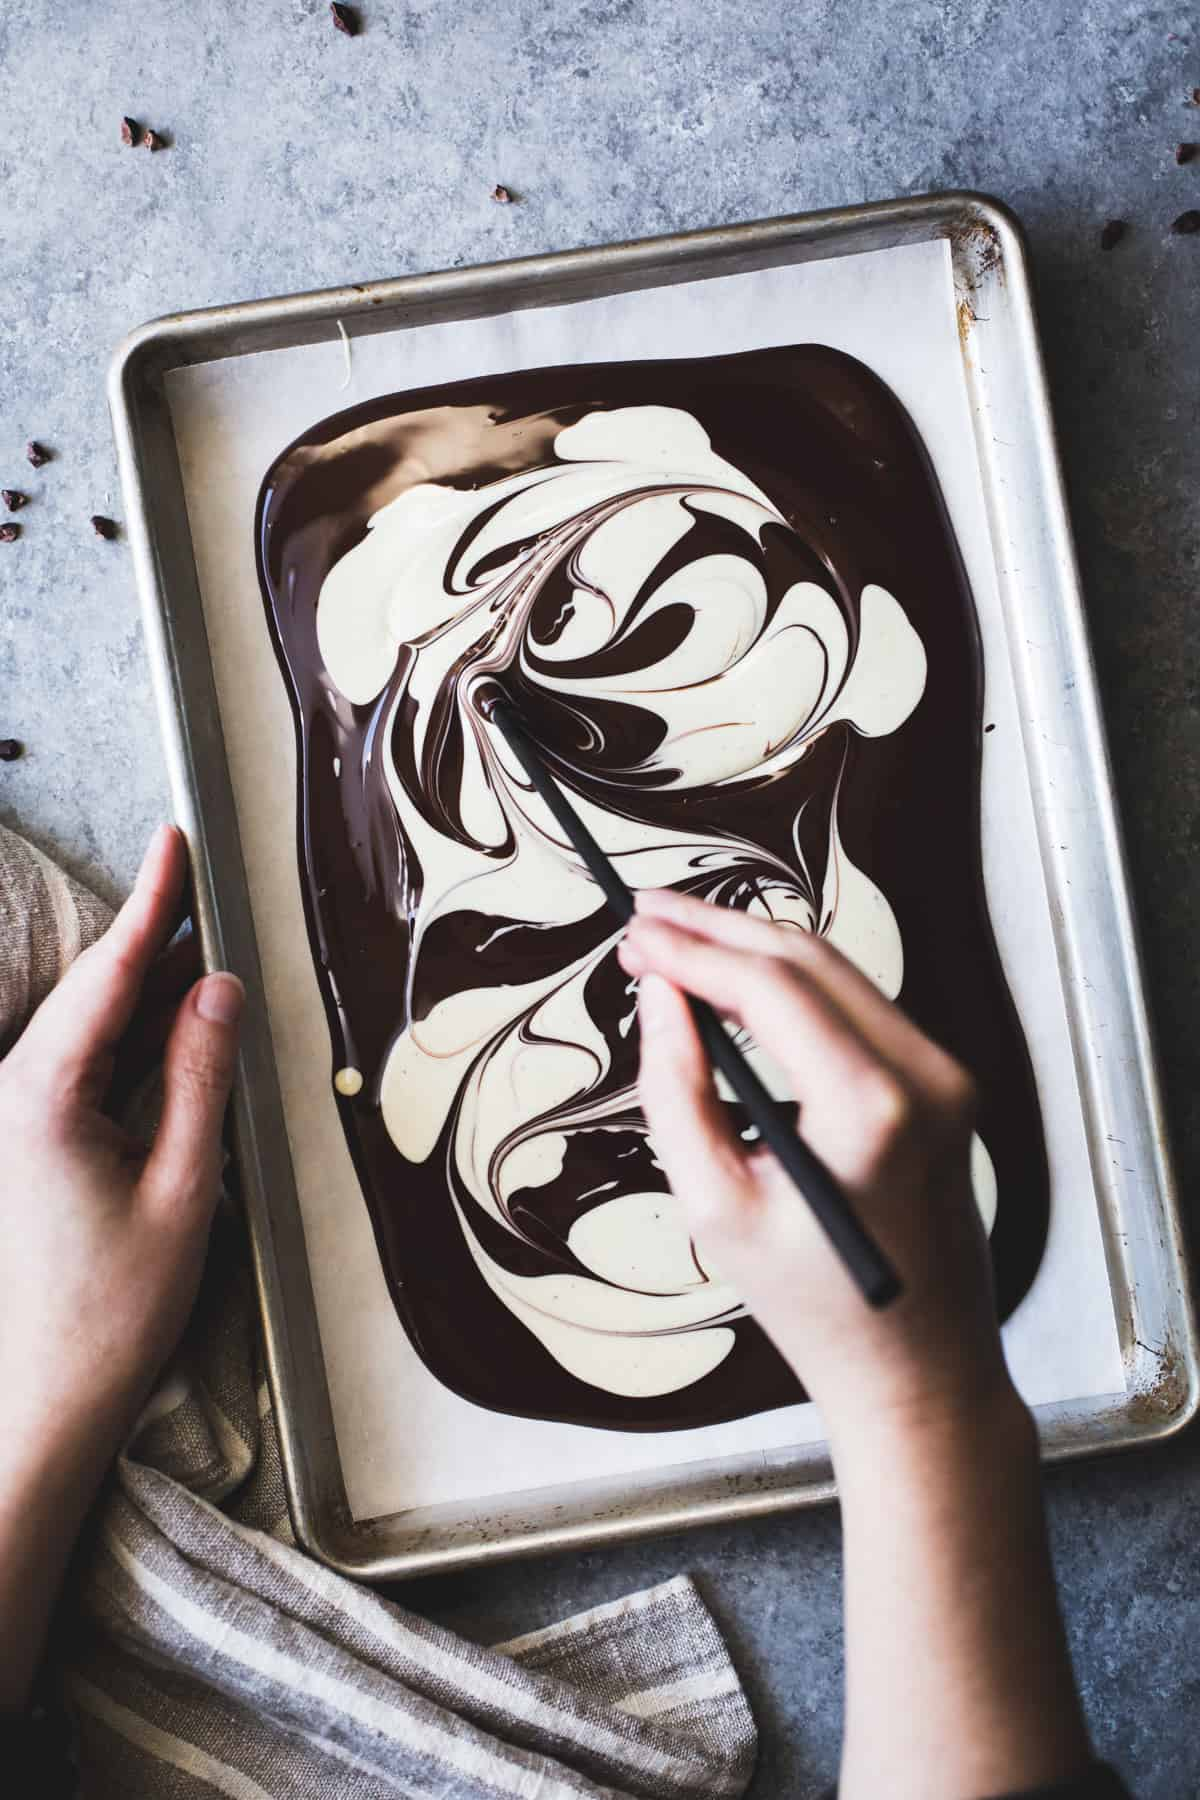 swirling chocolate